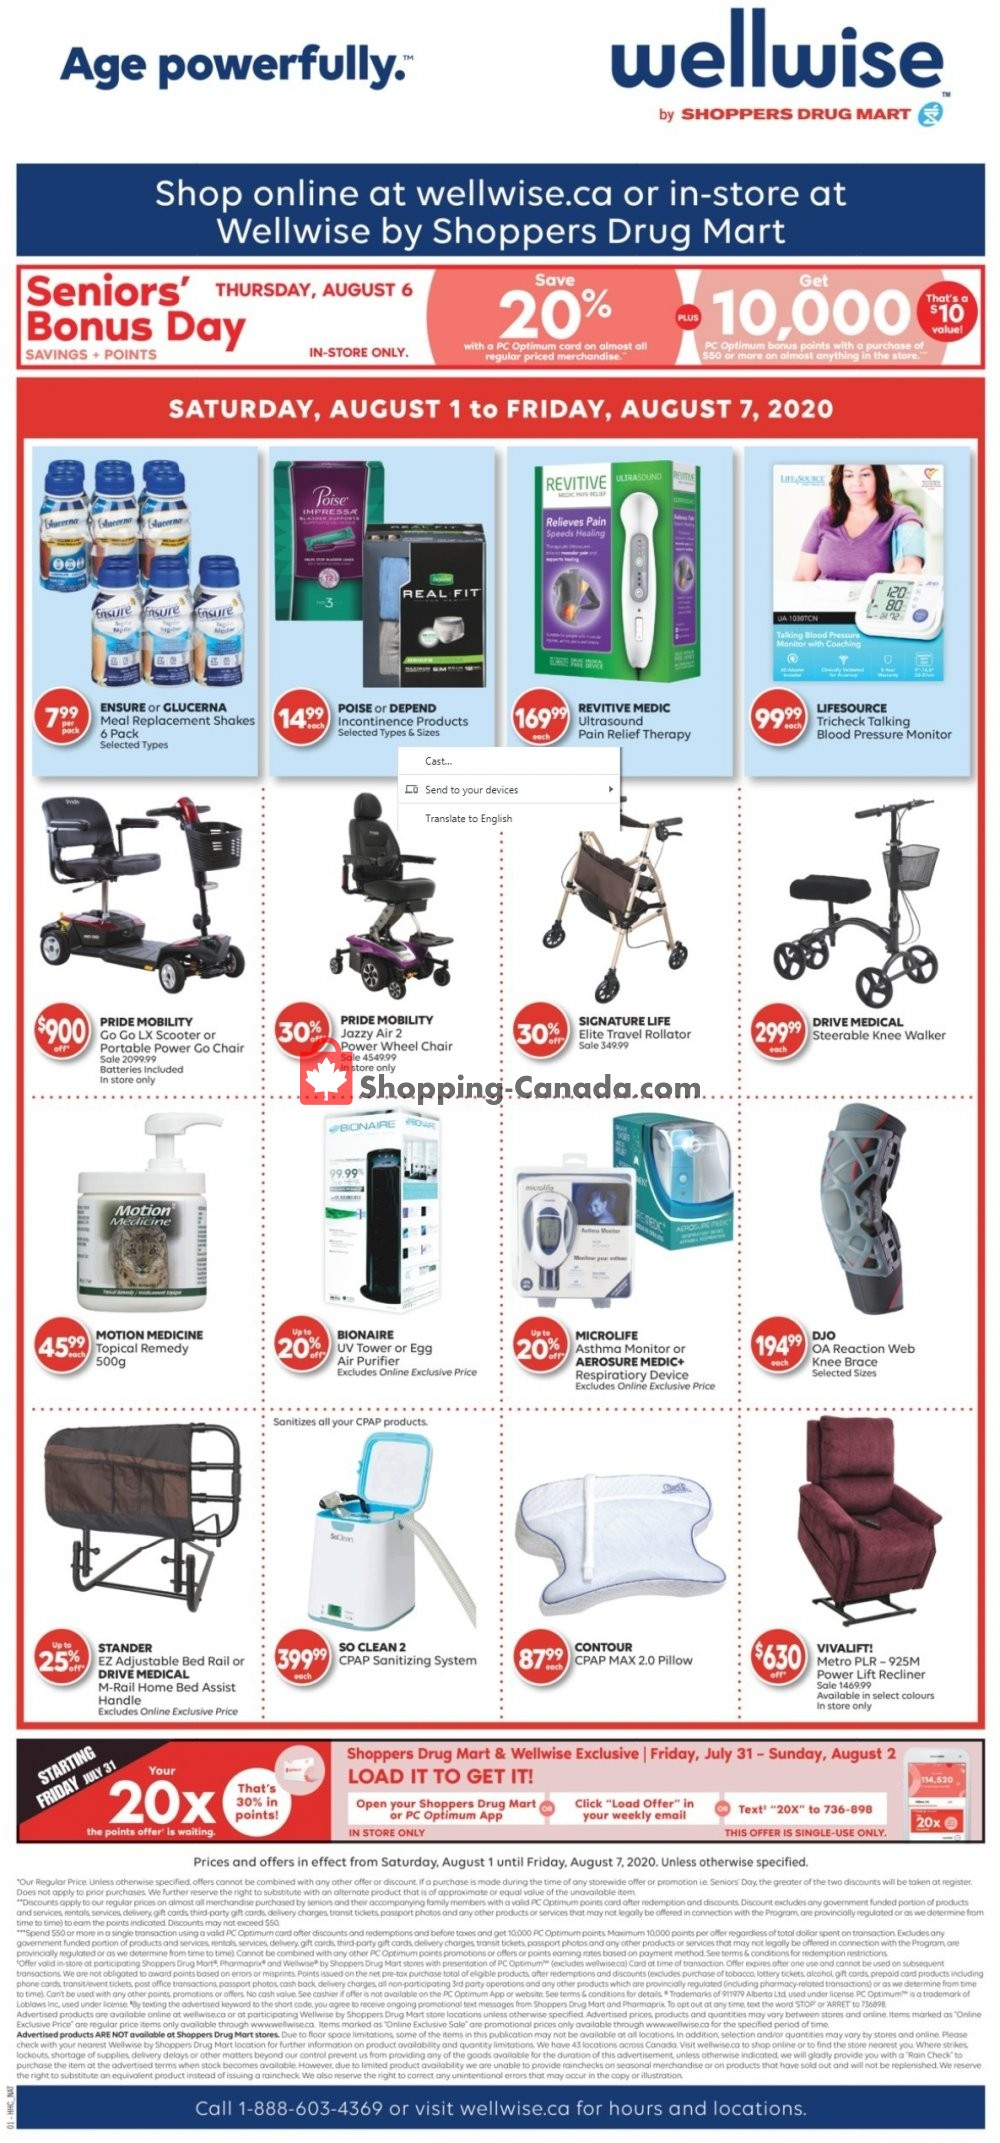 Flyer WellWise by Shoppers Drug Mart Canada - from Saturday August 1, 2020 to Friday August 7, 2020